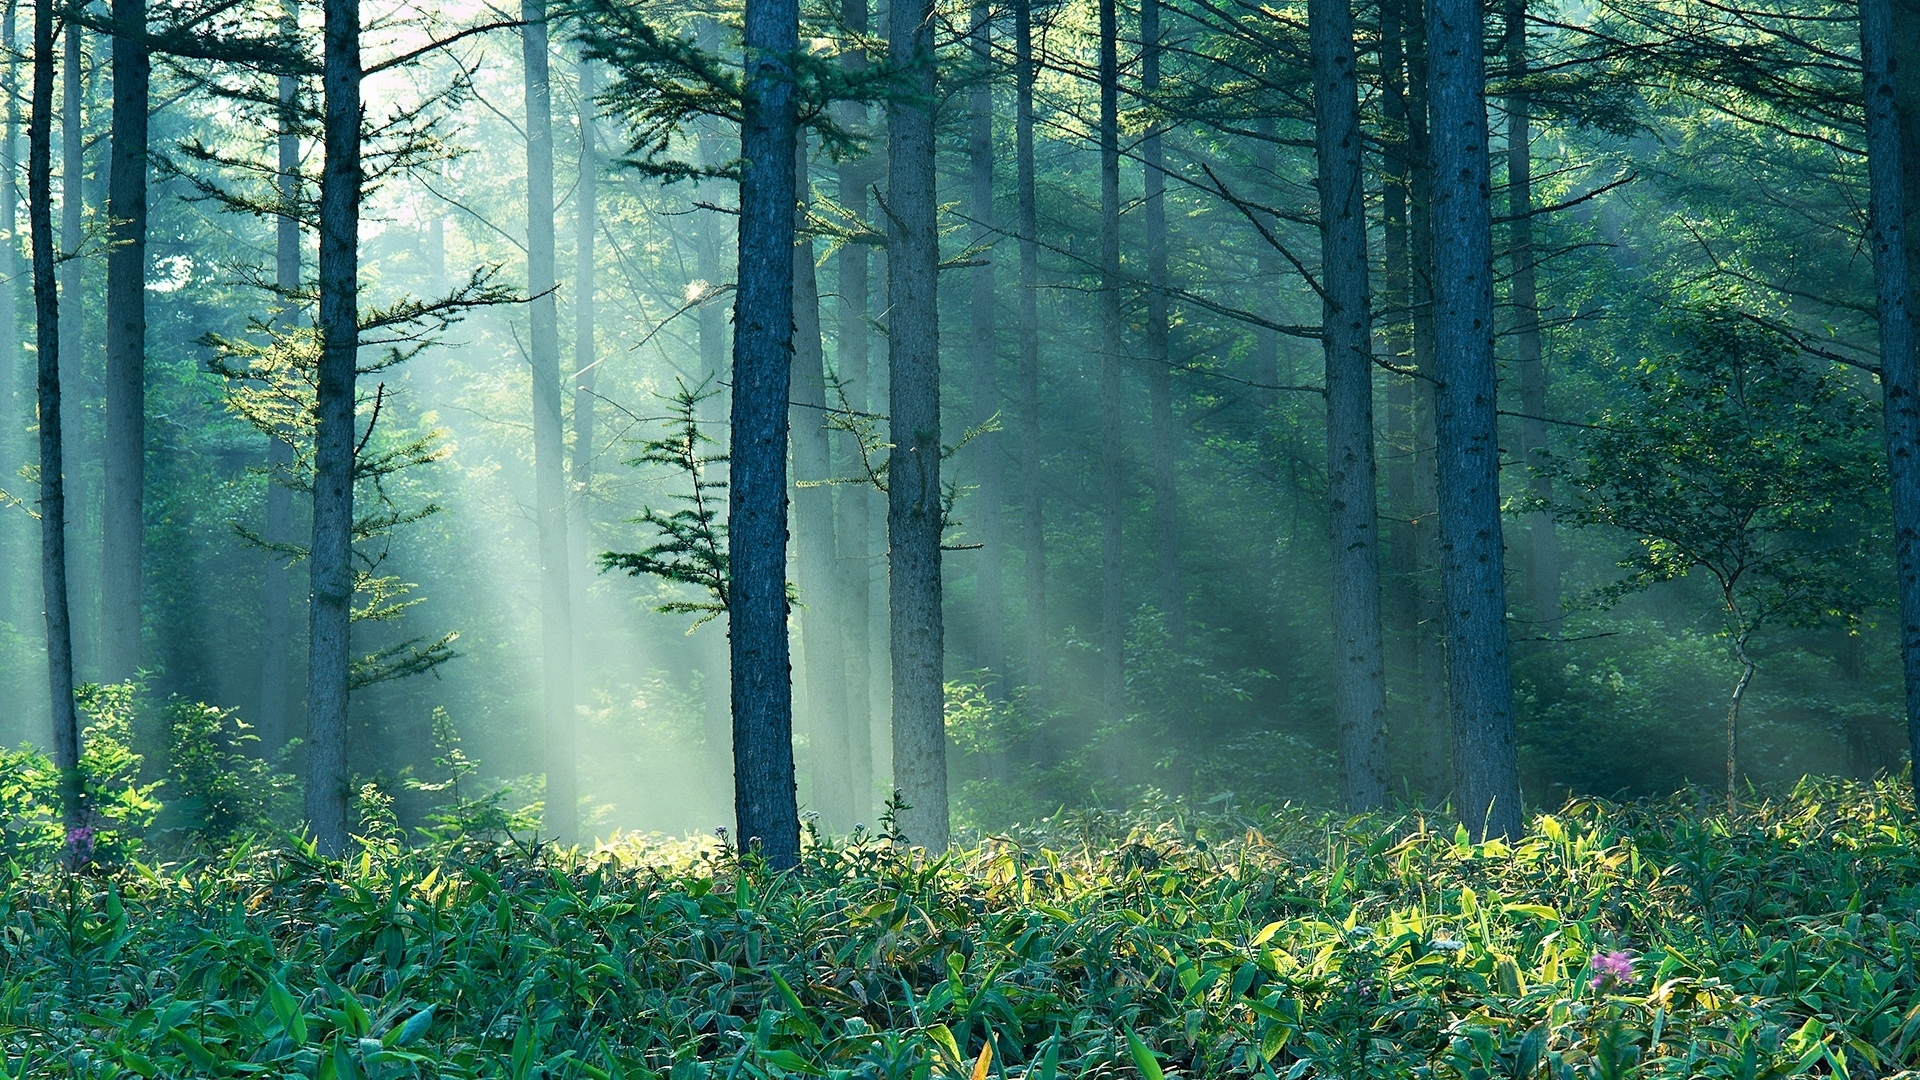 enchanted forest background tumblr 11 | background check all